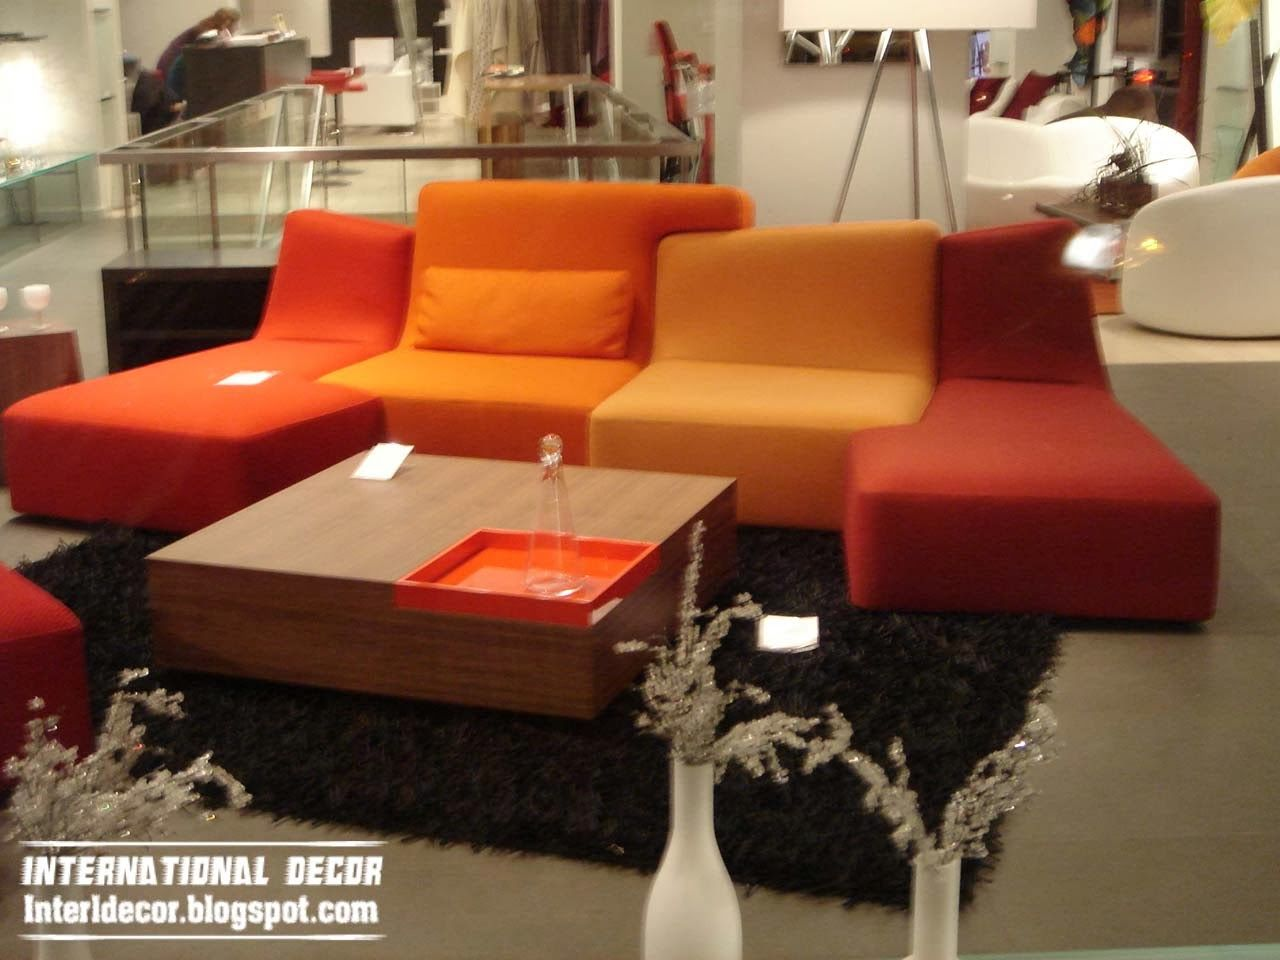 High Resolution Image: Sofa Design Furniture Sets 12 Puzzle Sofas And  Couches Furniture Sets Creative Designs. Ashley Furnitureu201a Be.